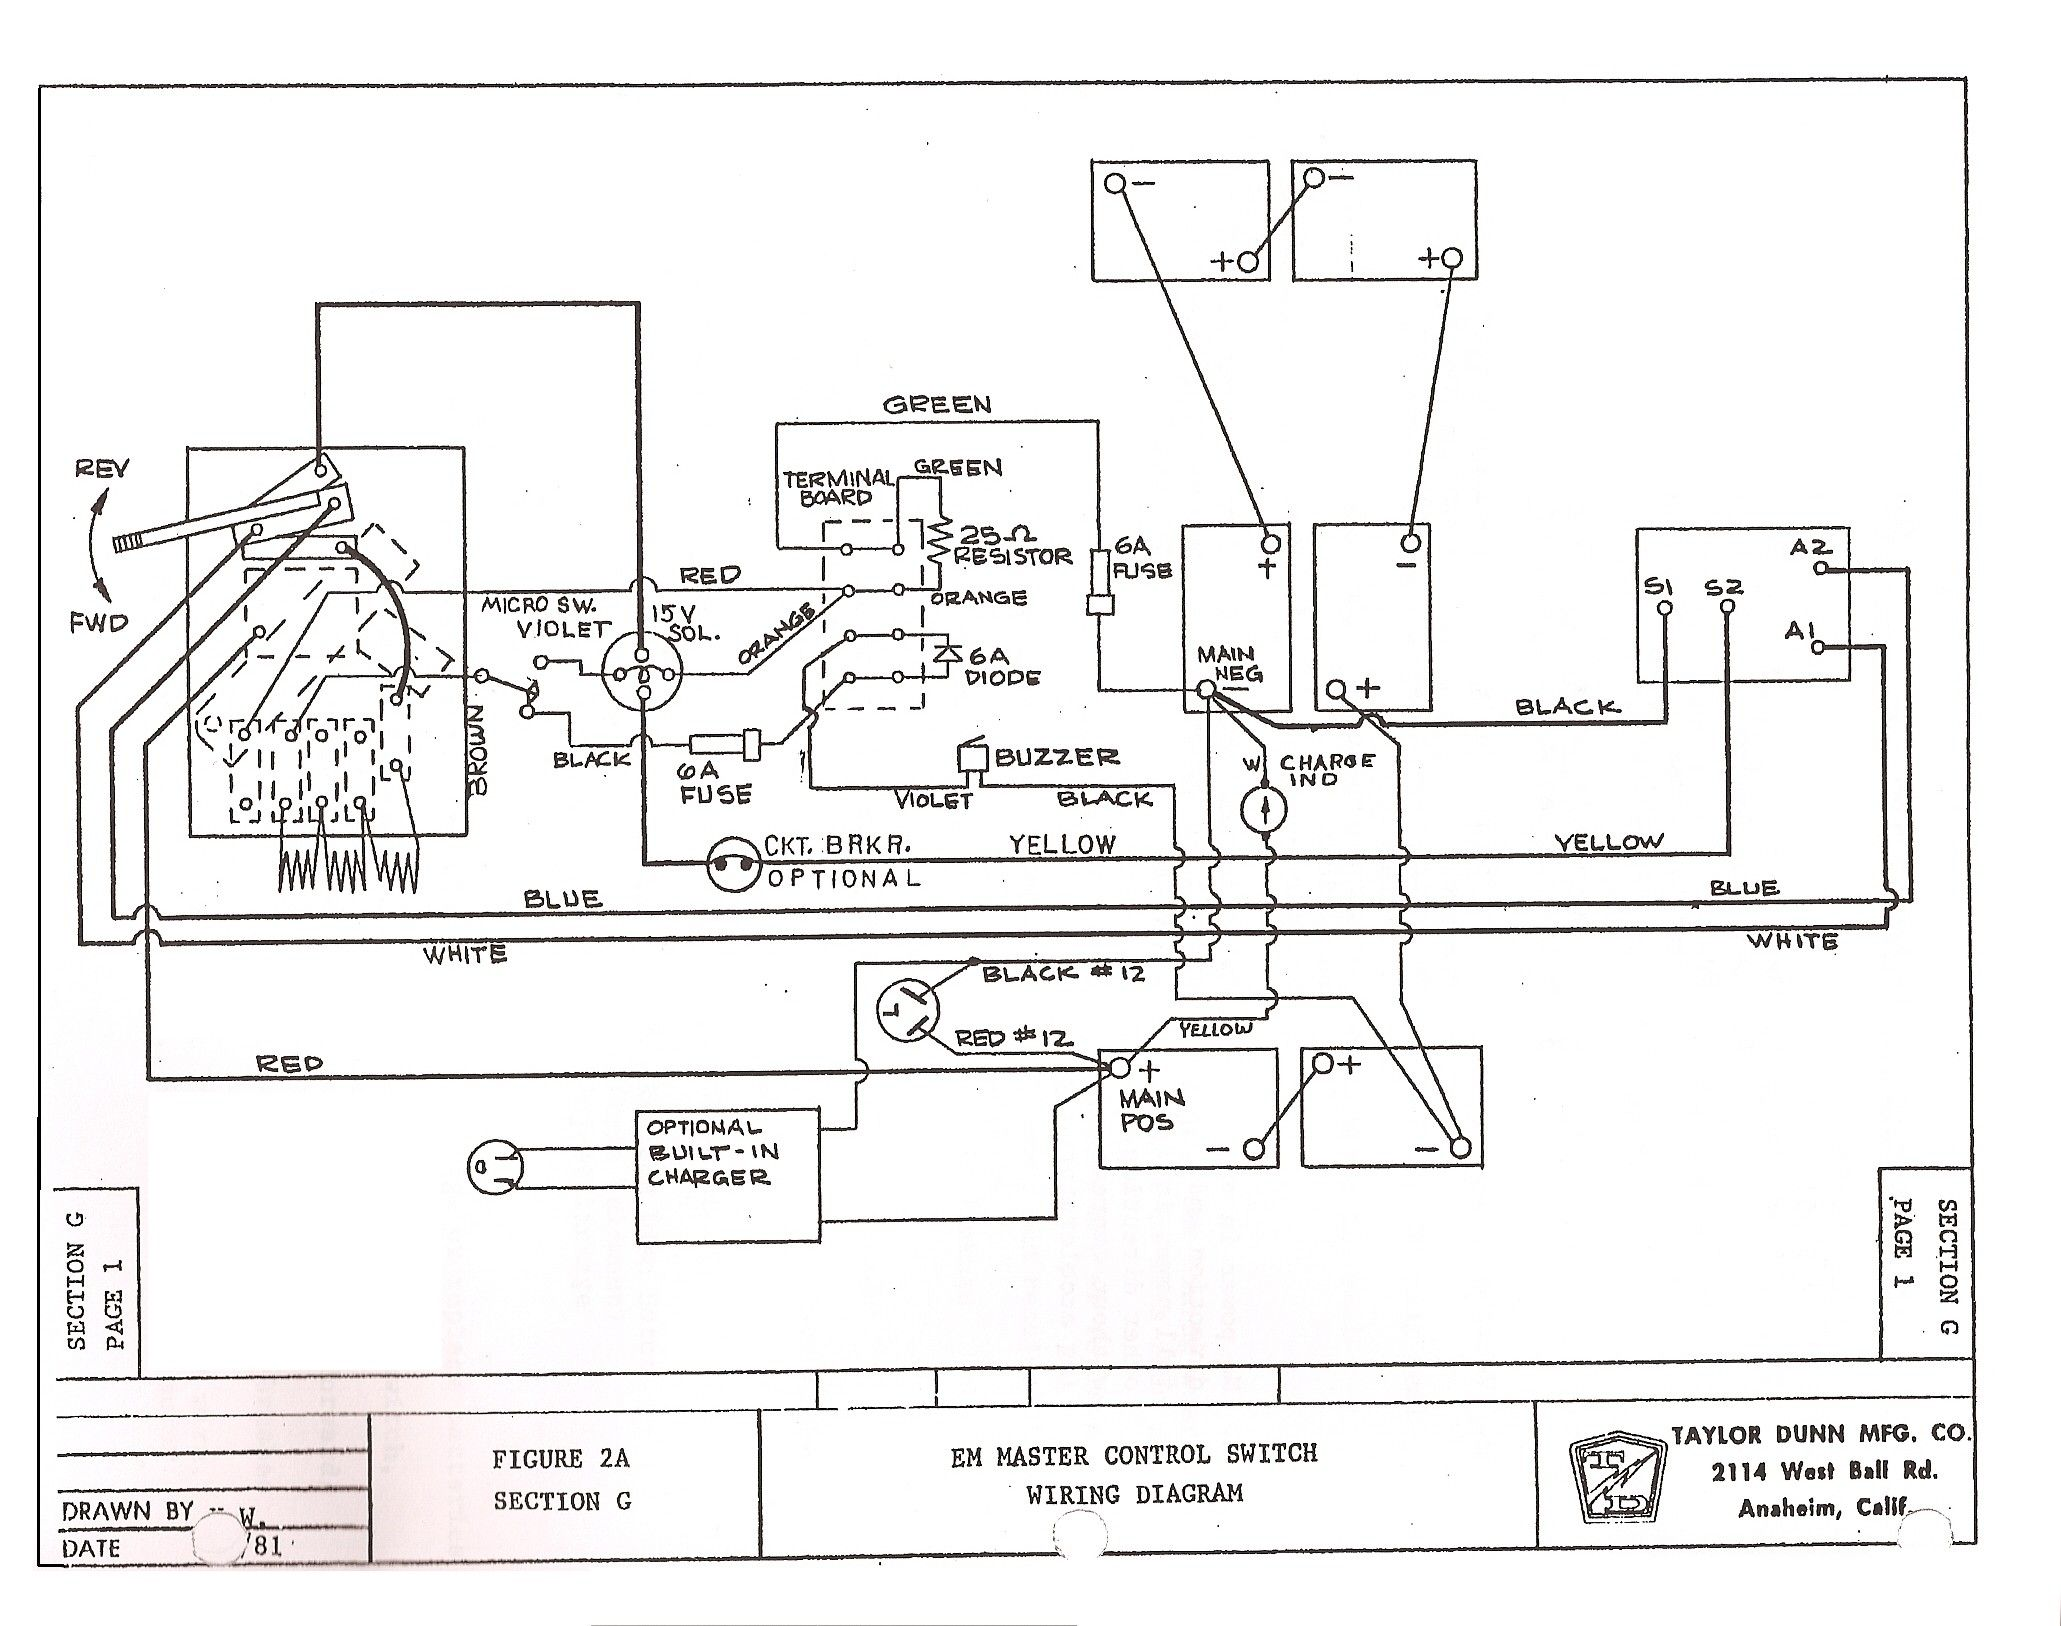 Wiring Diagram For Wayne Dalton Garage Door Opener